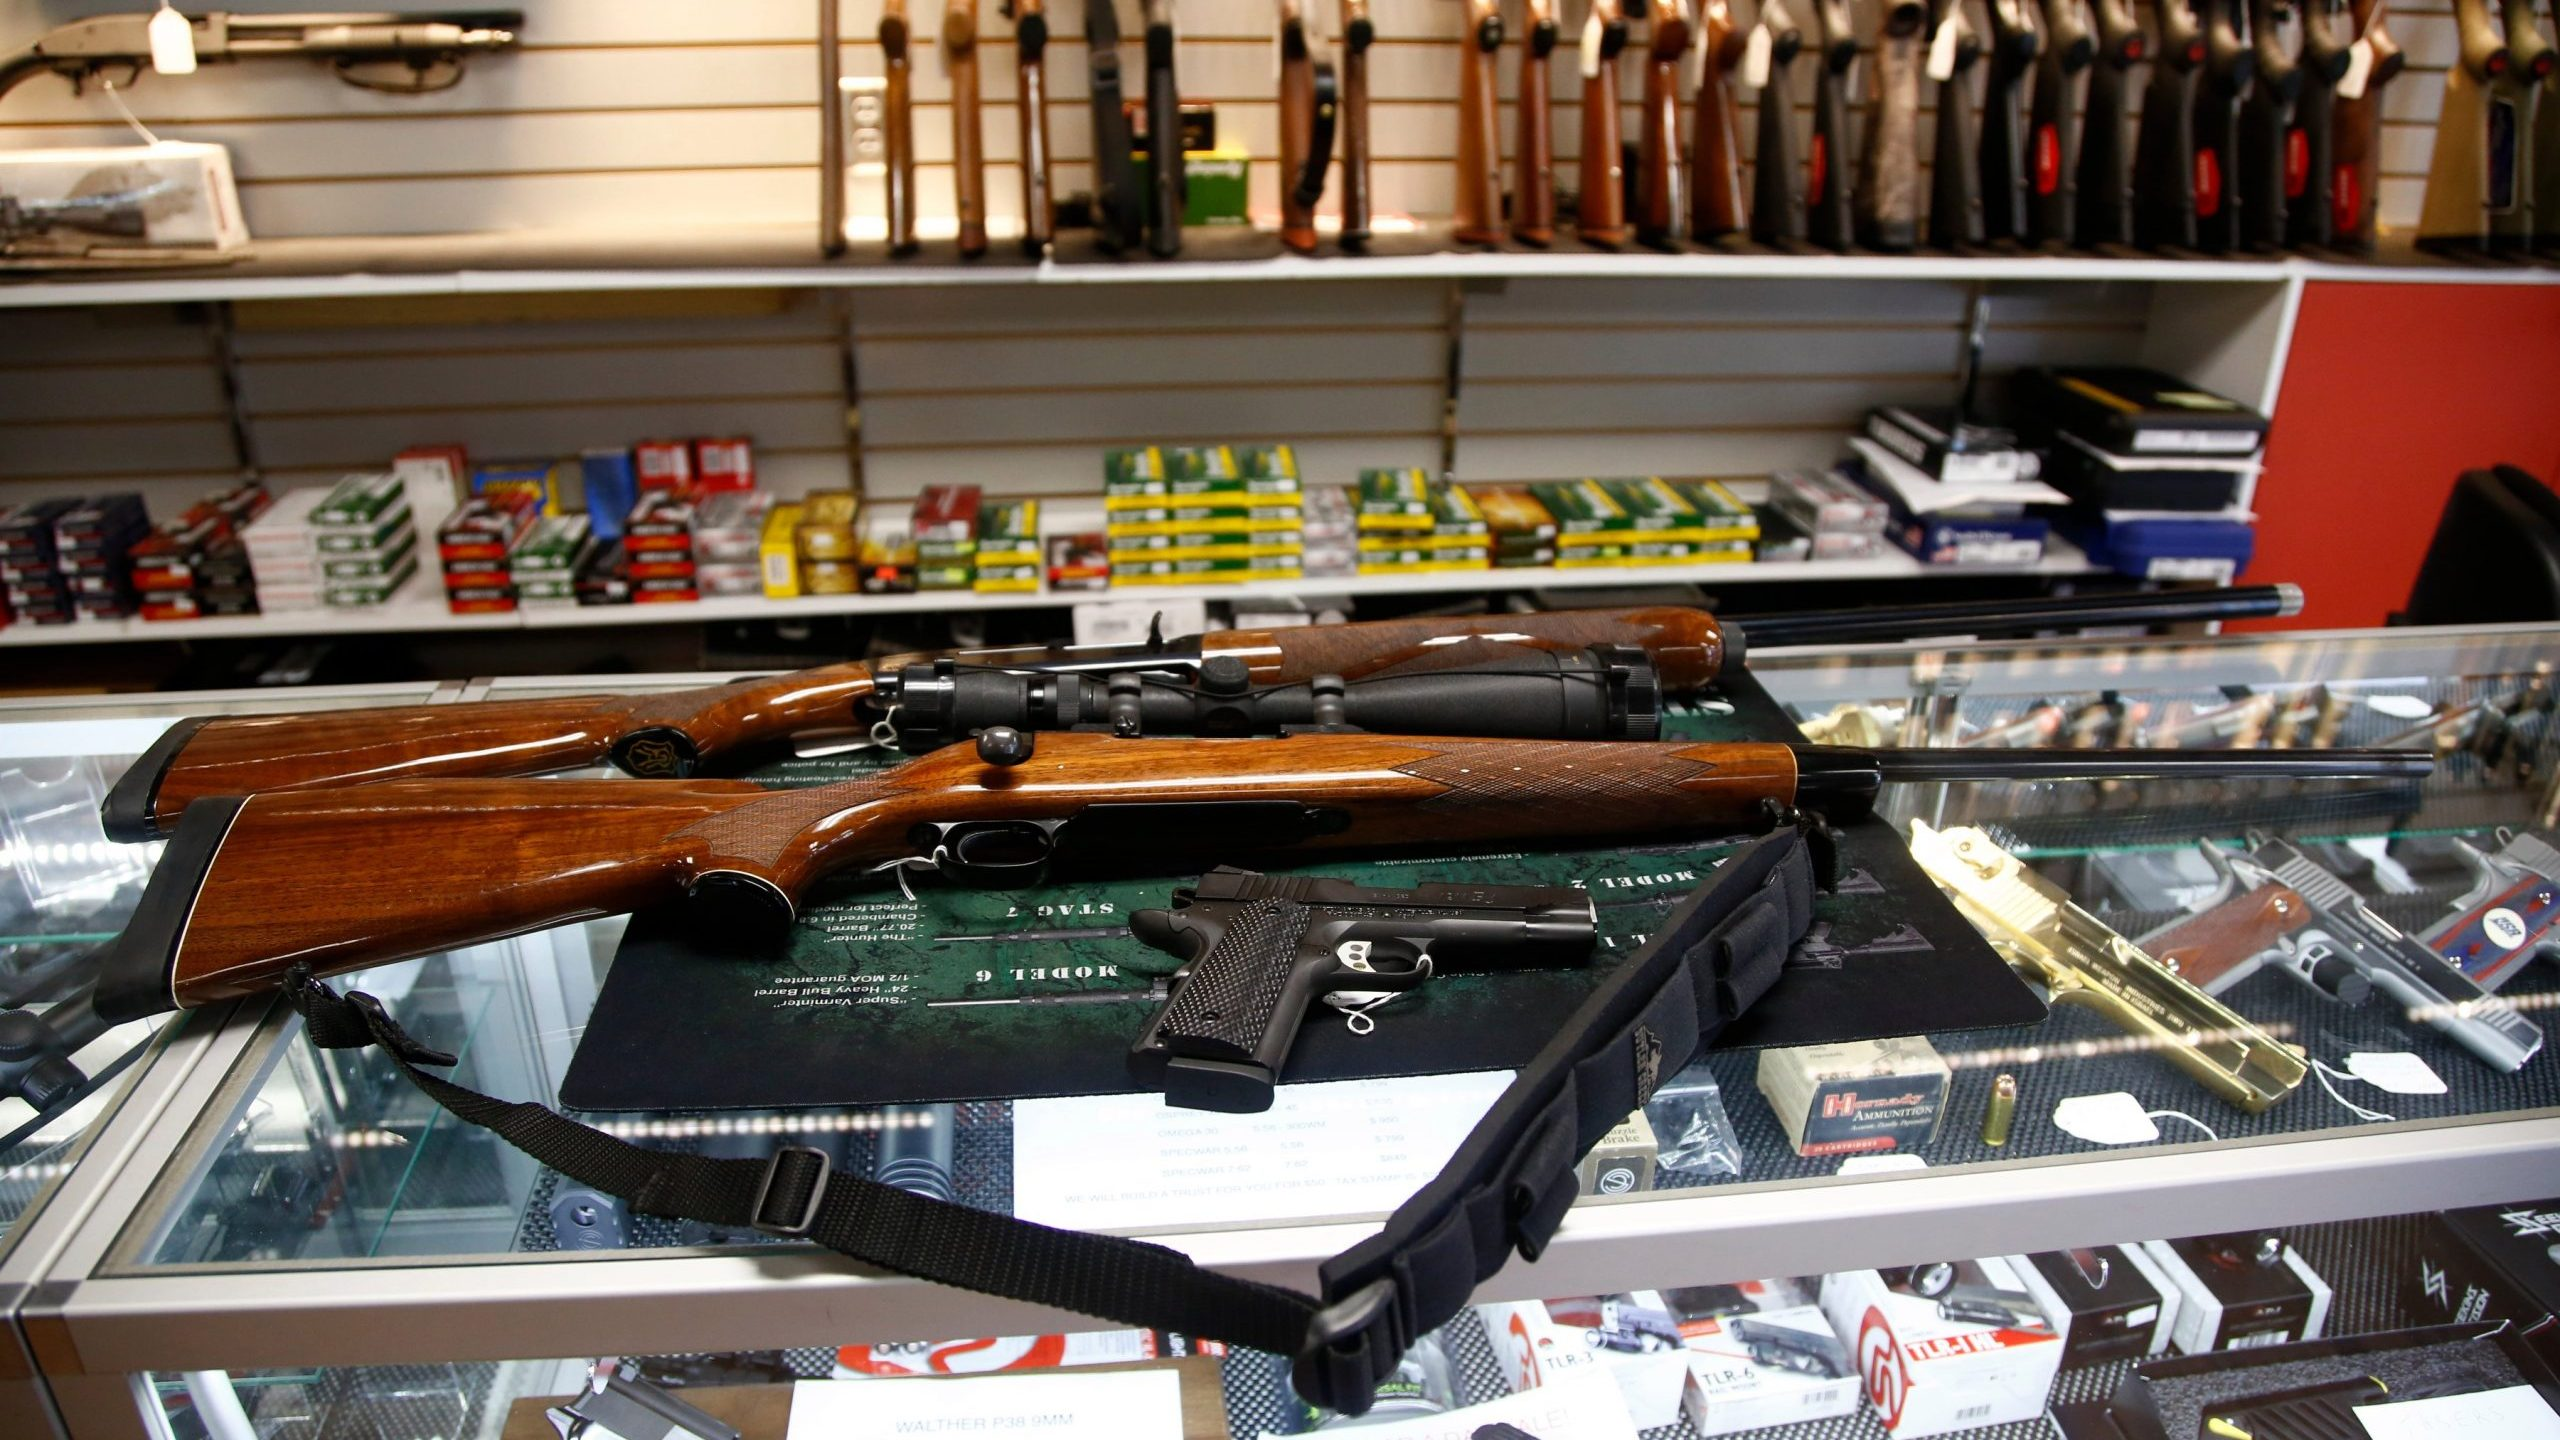 A Remington 700 hunting rifle, a Remington 1100 shotgun and a Remington R1 Enhanced model 1911 pistol are seen for sale at Atlantic Outdoors gun shop on March 26, 2018, in Stokesdale, North Carolina. (Credit: Brian Blanco/Getty Images)